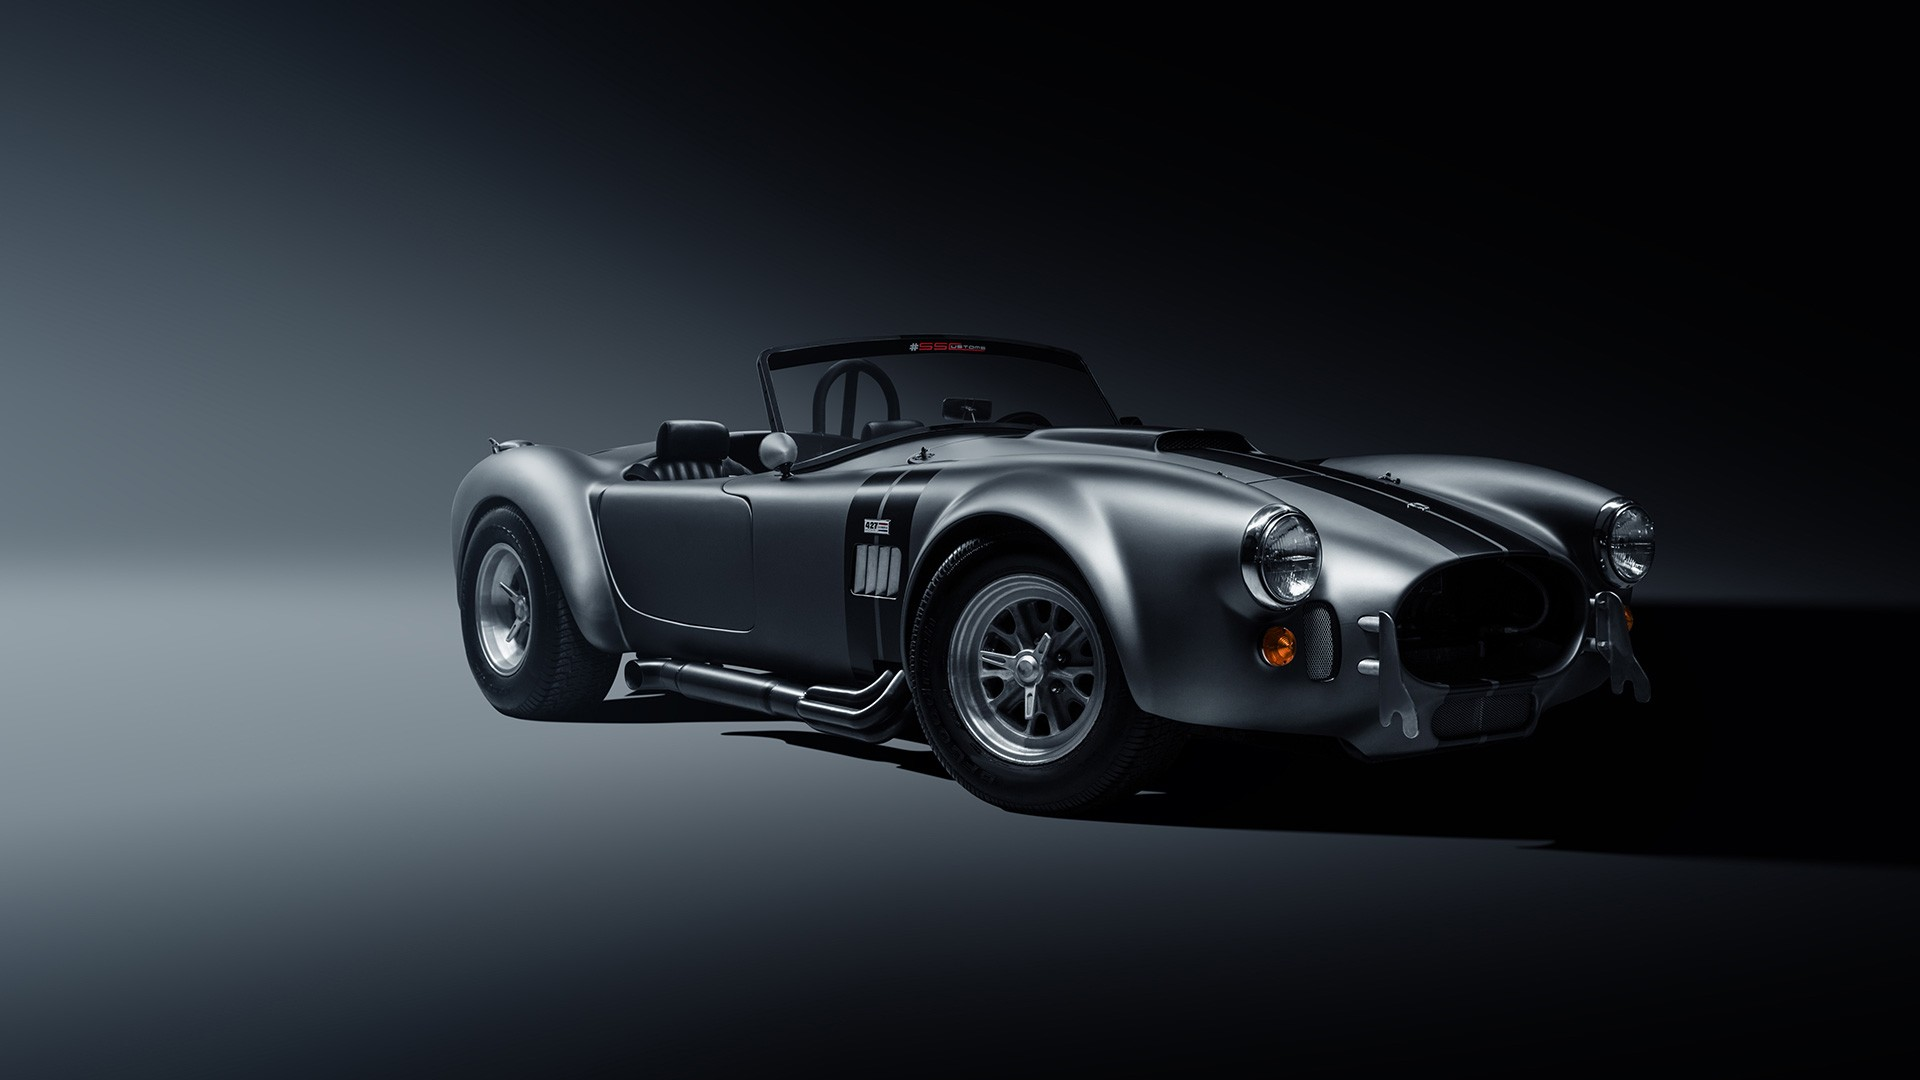 Cars Hd Wallpapers 1080p For Pc Bmw Shelby Cobra Ss Customs Wallpaper Hd Car Wallpapers Id